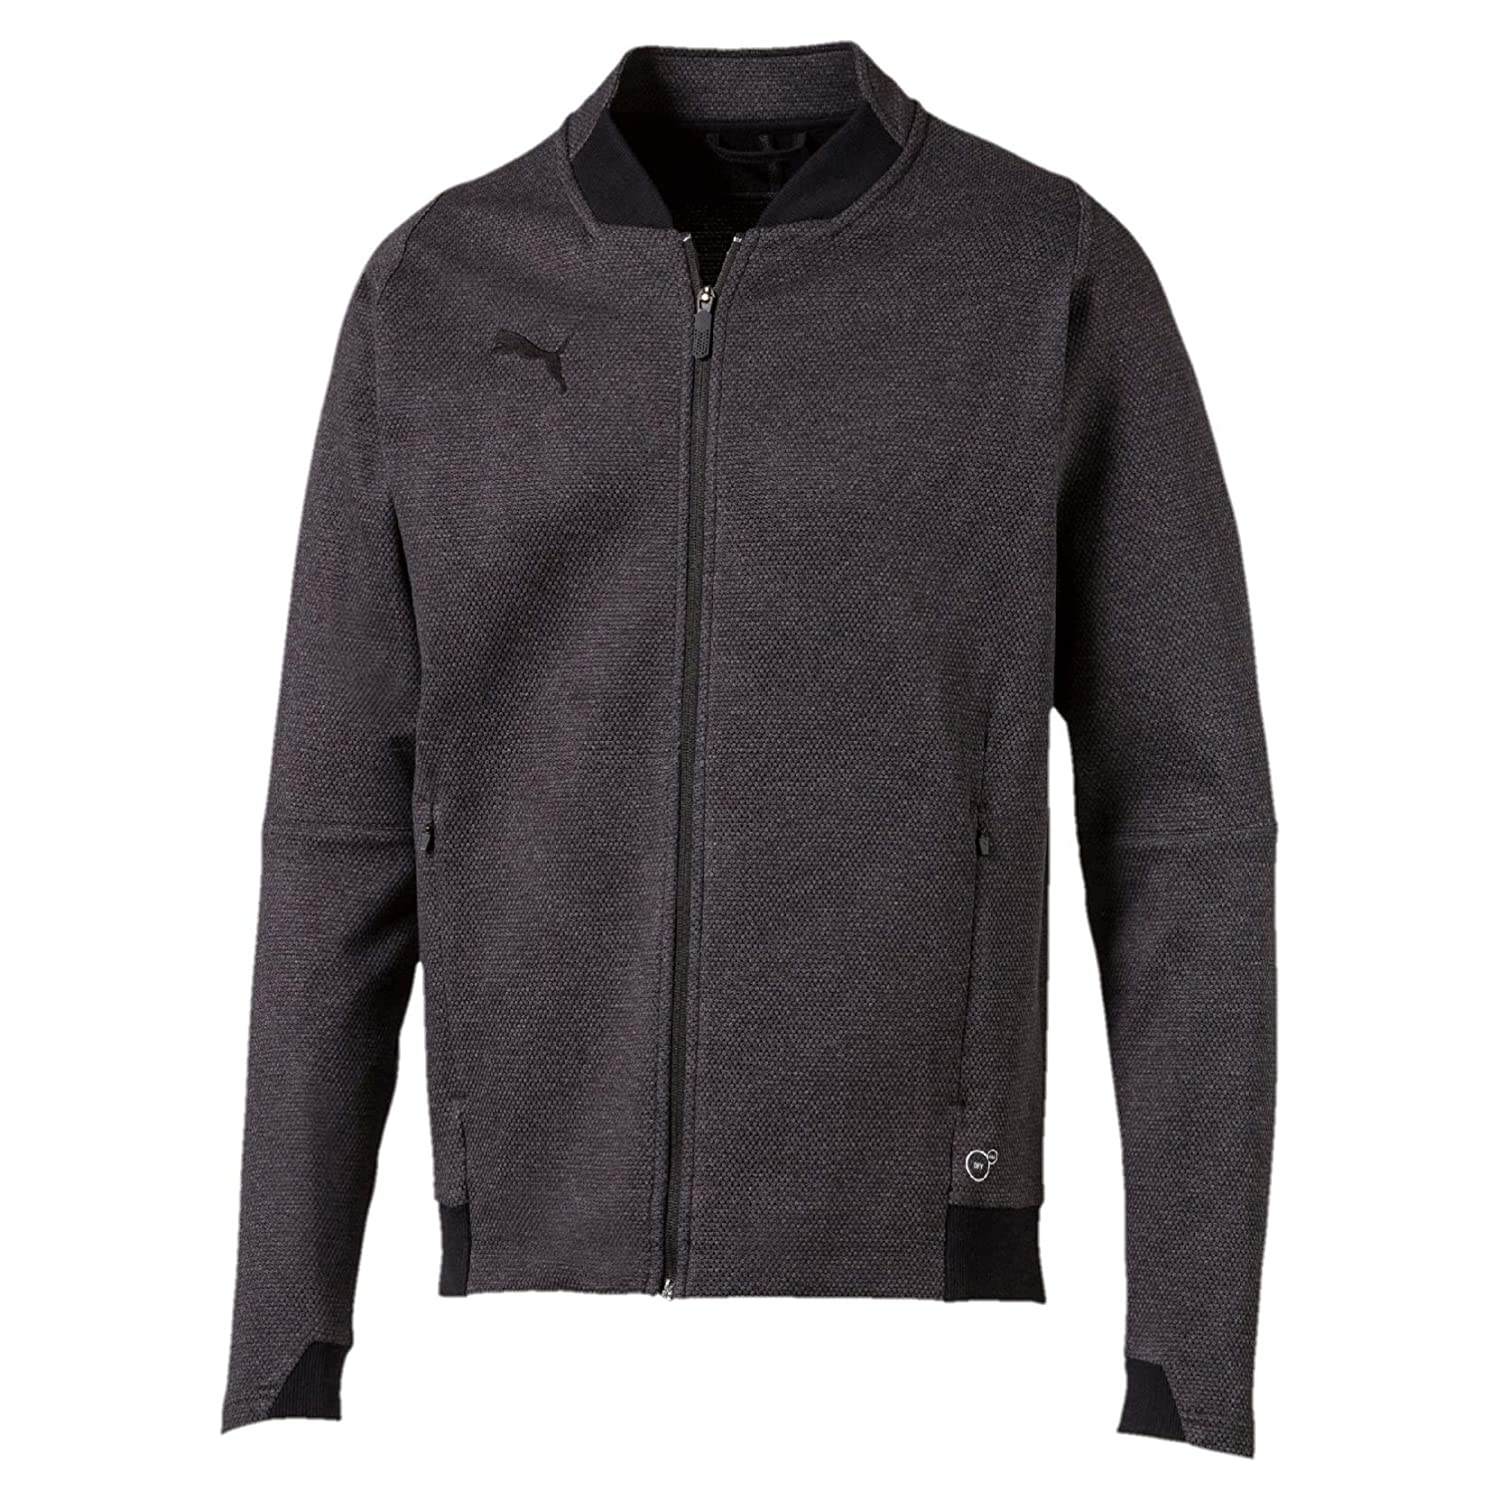 Puma Herren Final Casuals Jacket Jacke